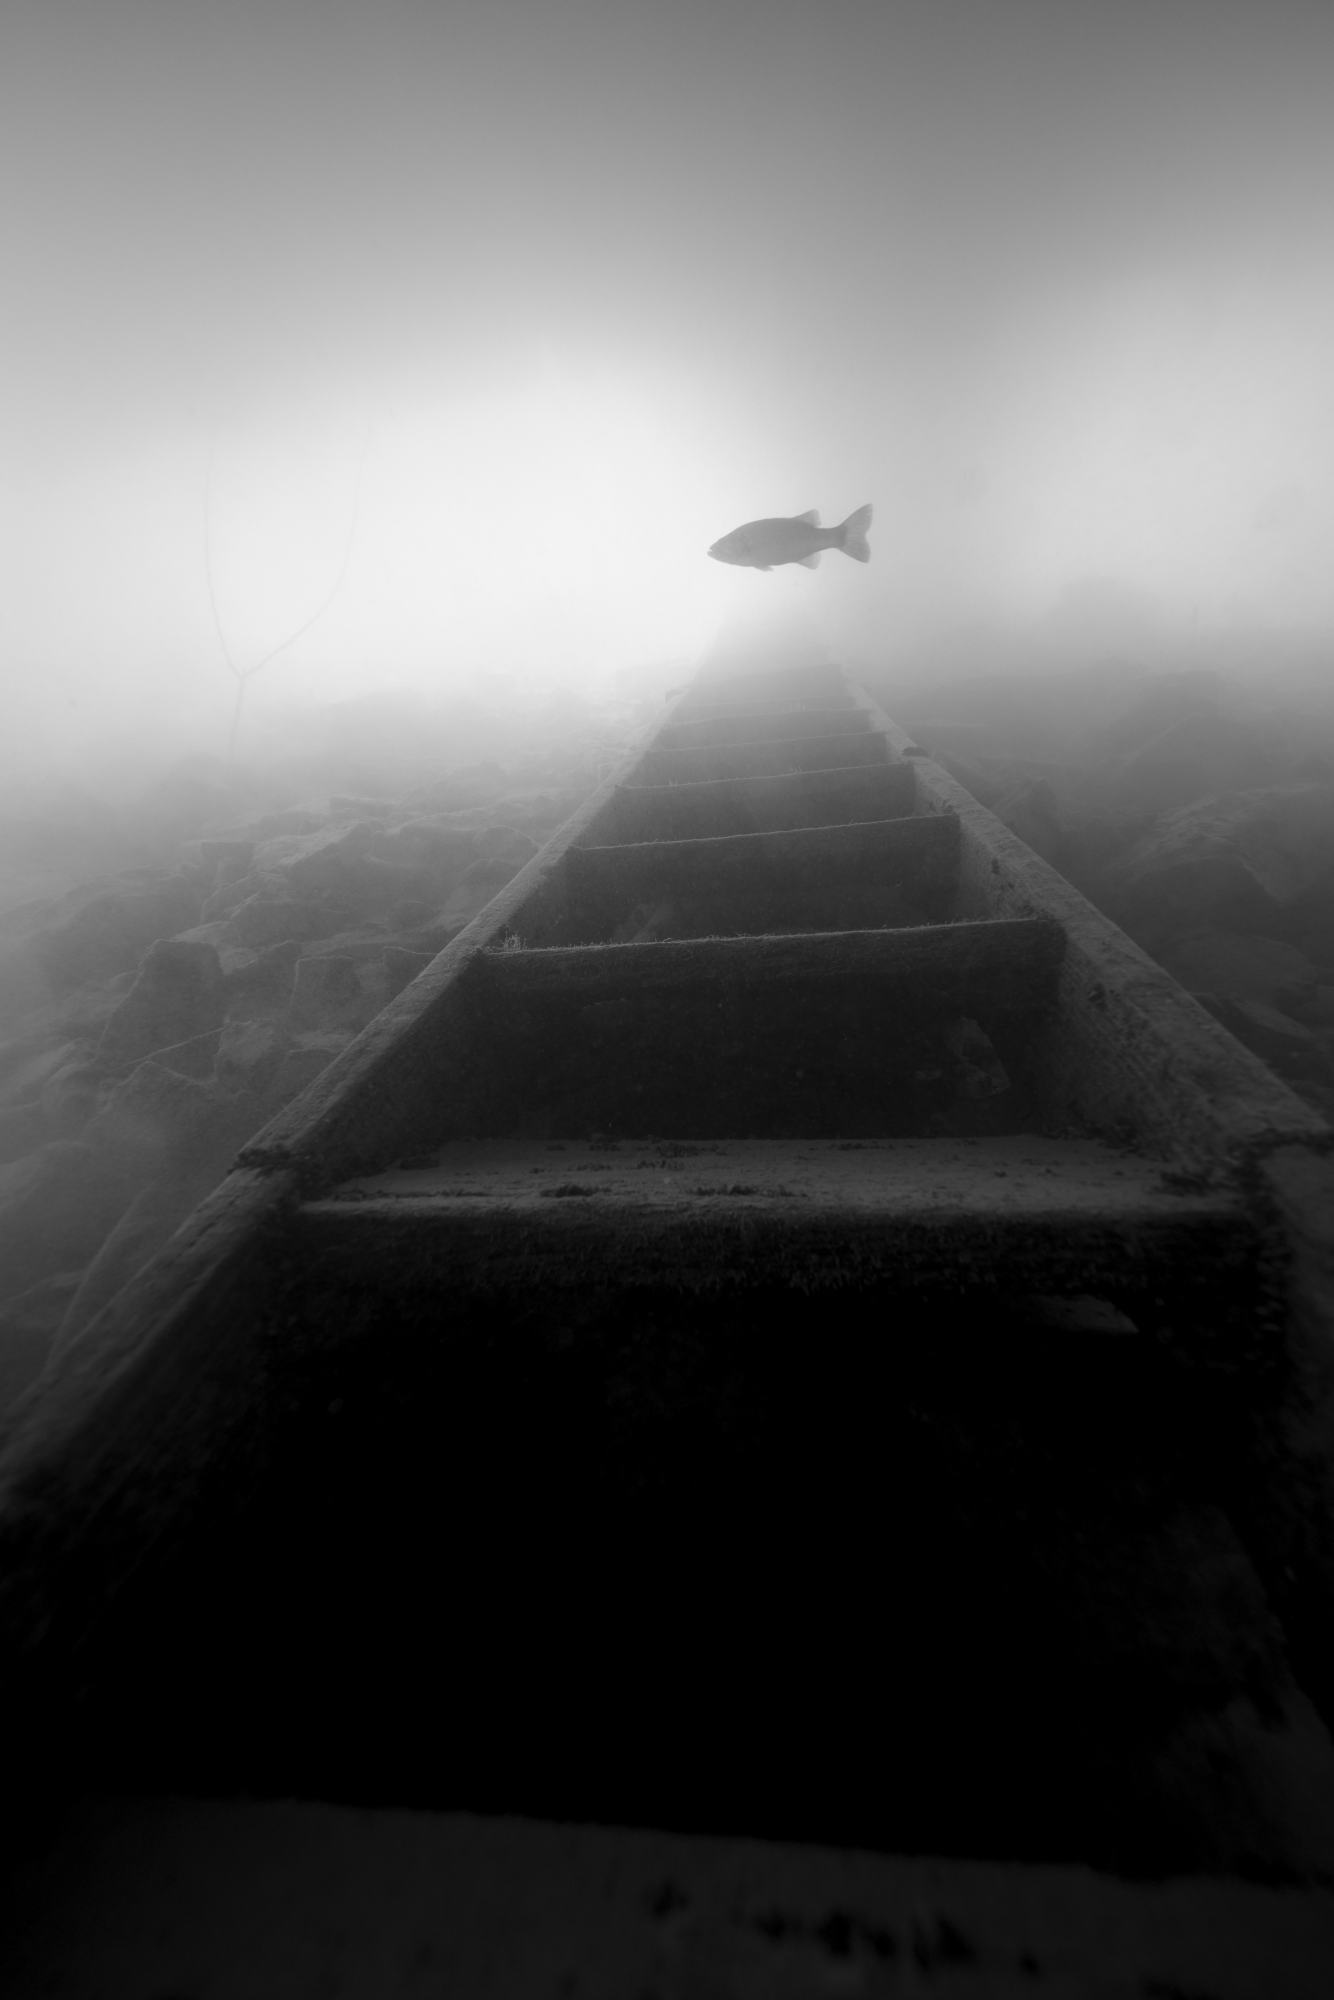 A stairway to fish.